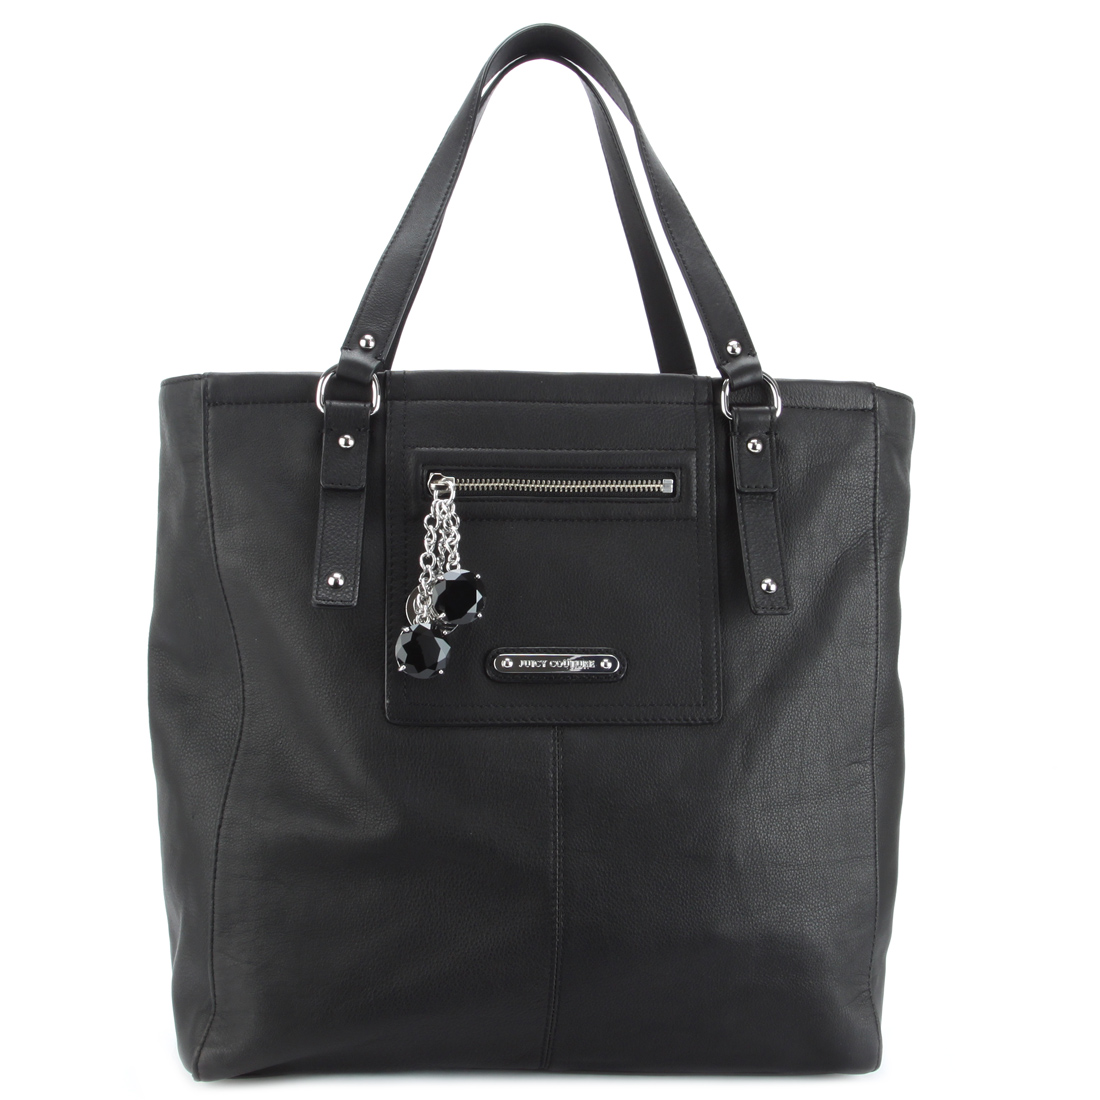 Juicy Couture Leather Paisley Tote